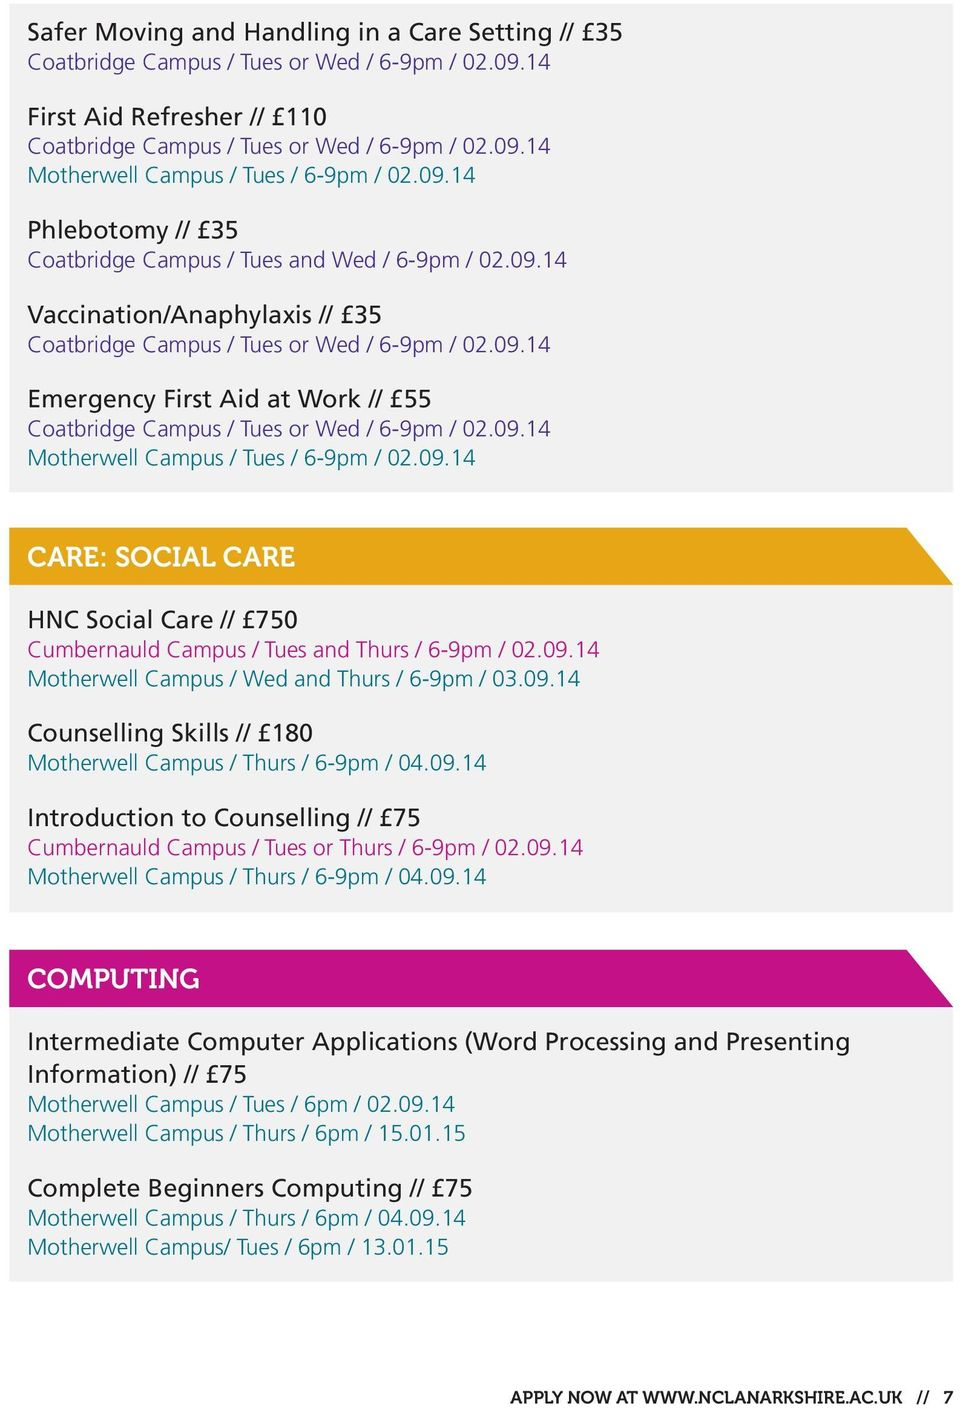 09.14 Motherwell Campus / Wed and Thurs / 6-9pm / 03.09.14 Counselling Skills // 180 Motherwell Campus / Thurs / 6-9pm / 04.09.14 Introduction to Counselling // 75 Cumbernauld Campus / Tues or Thurs / 6-9pm / 02.